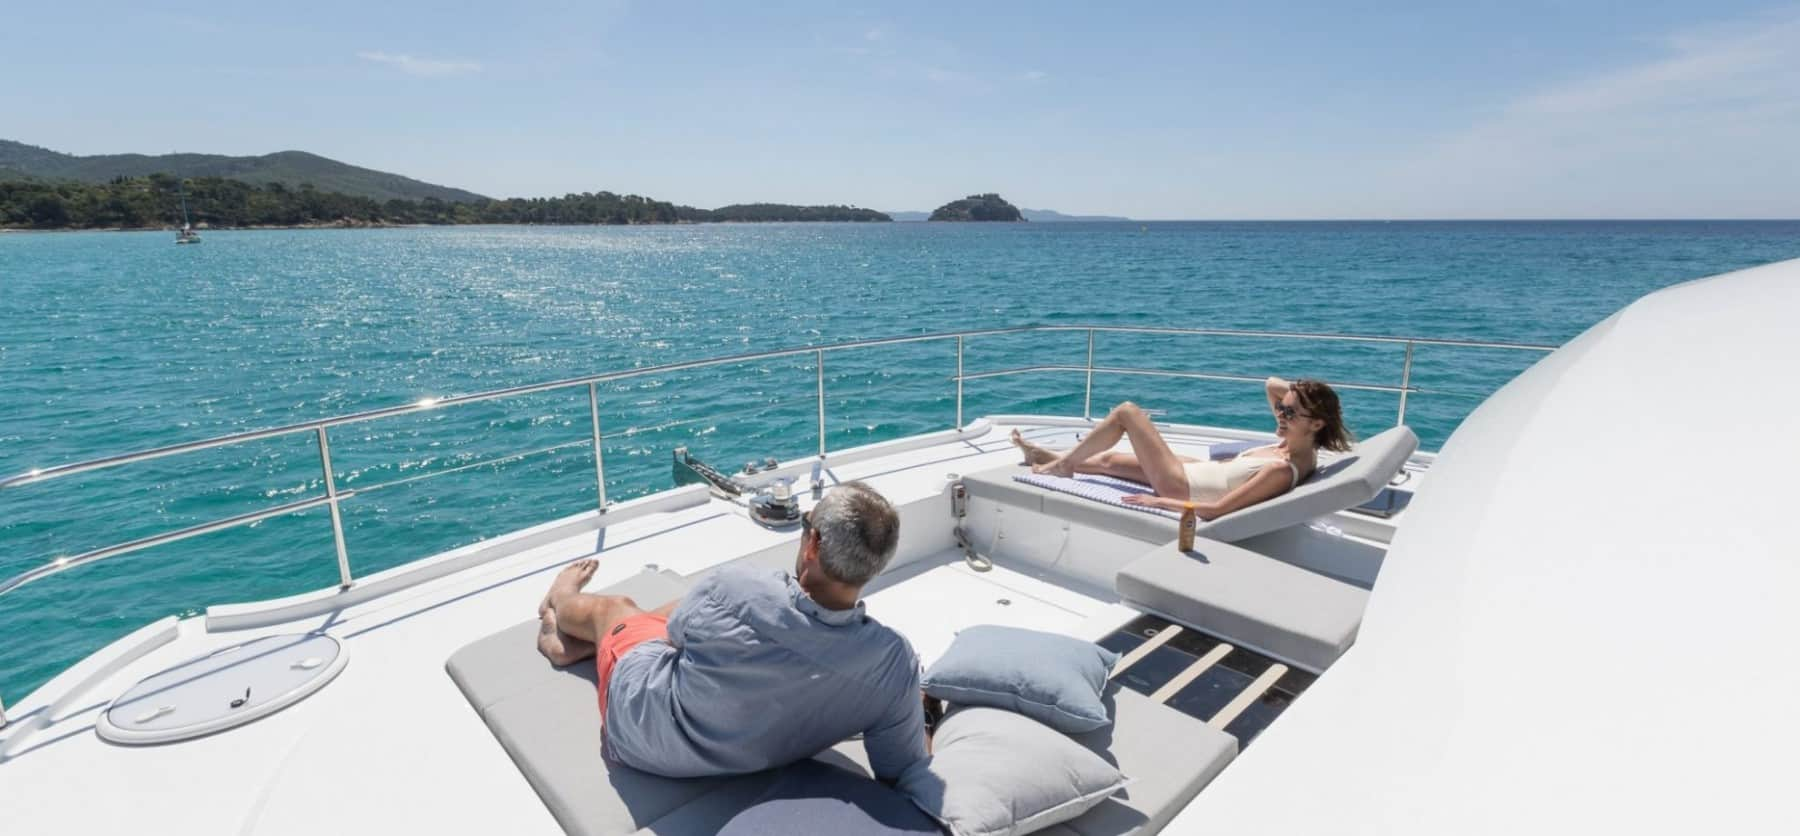 A man and a woman sunbathing on deck of a Fountaine Pajot MY 44 while looking out over the beautiful blue waters